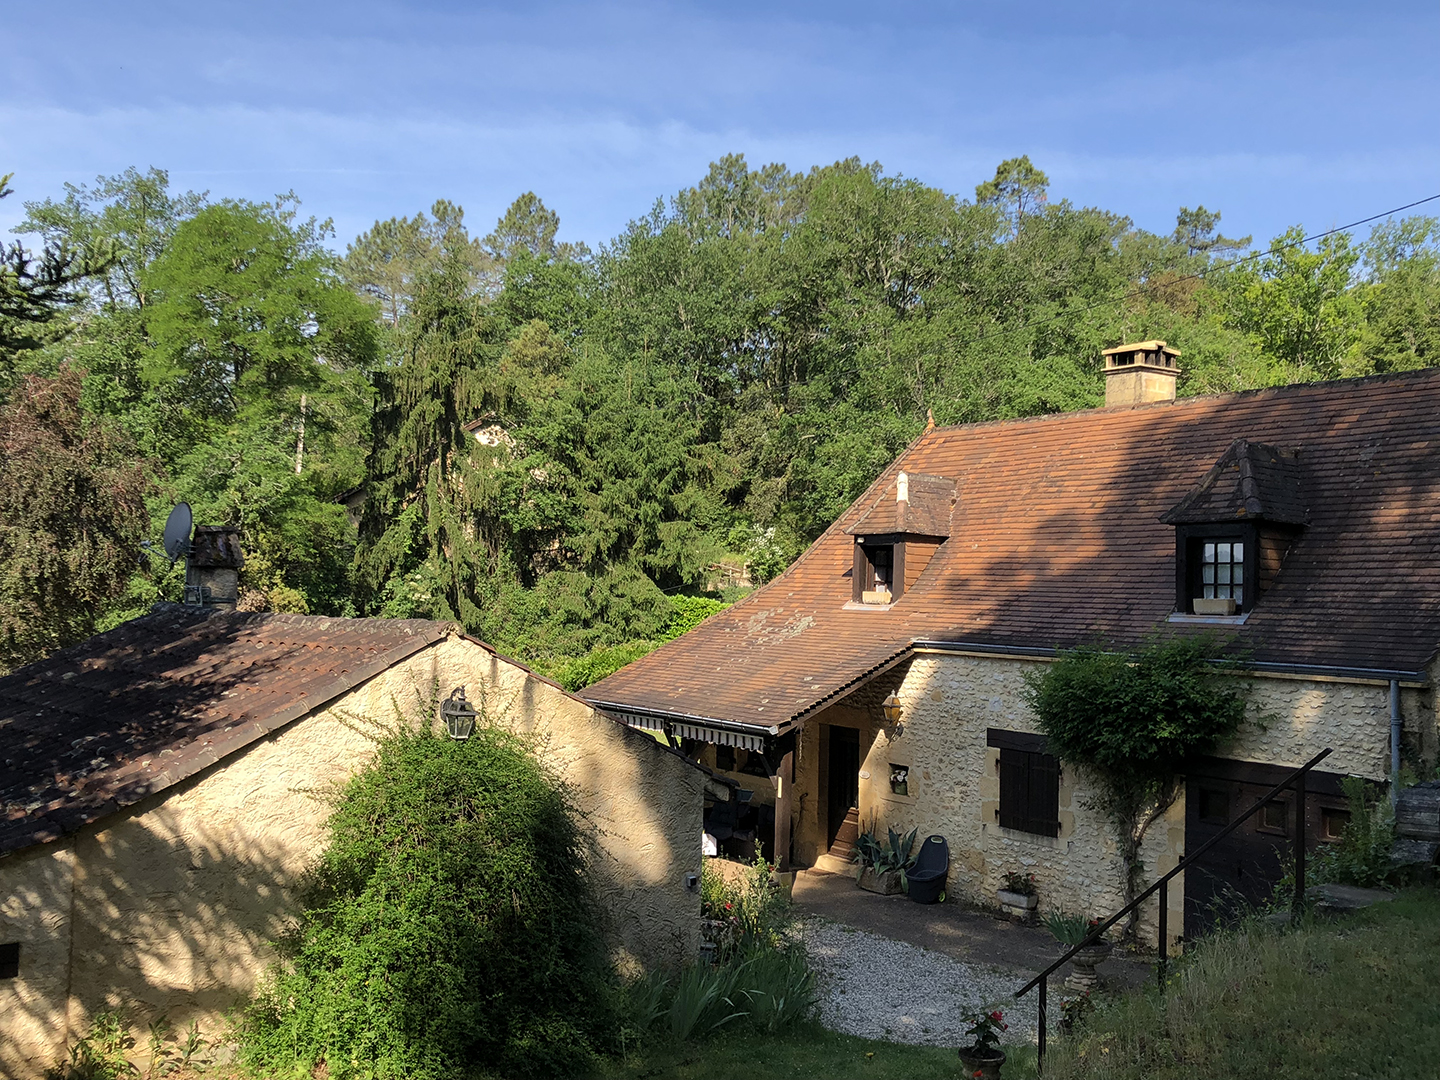 Cécile's house and maison Lafon nestled within the trees